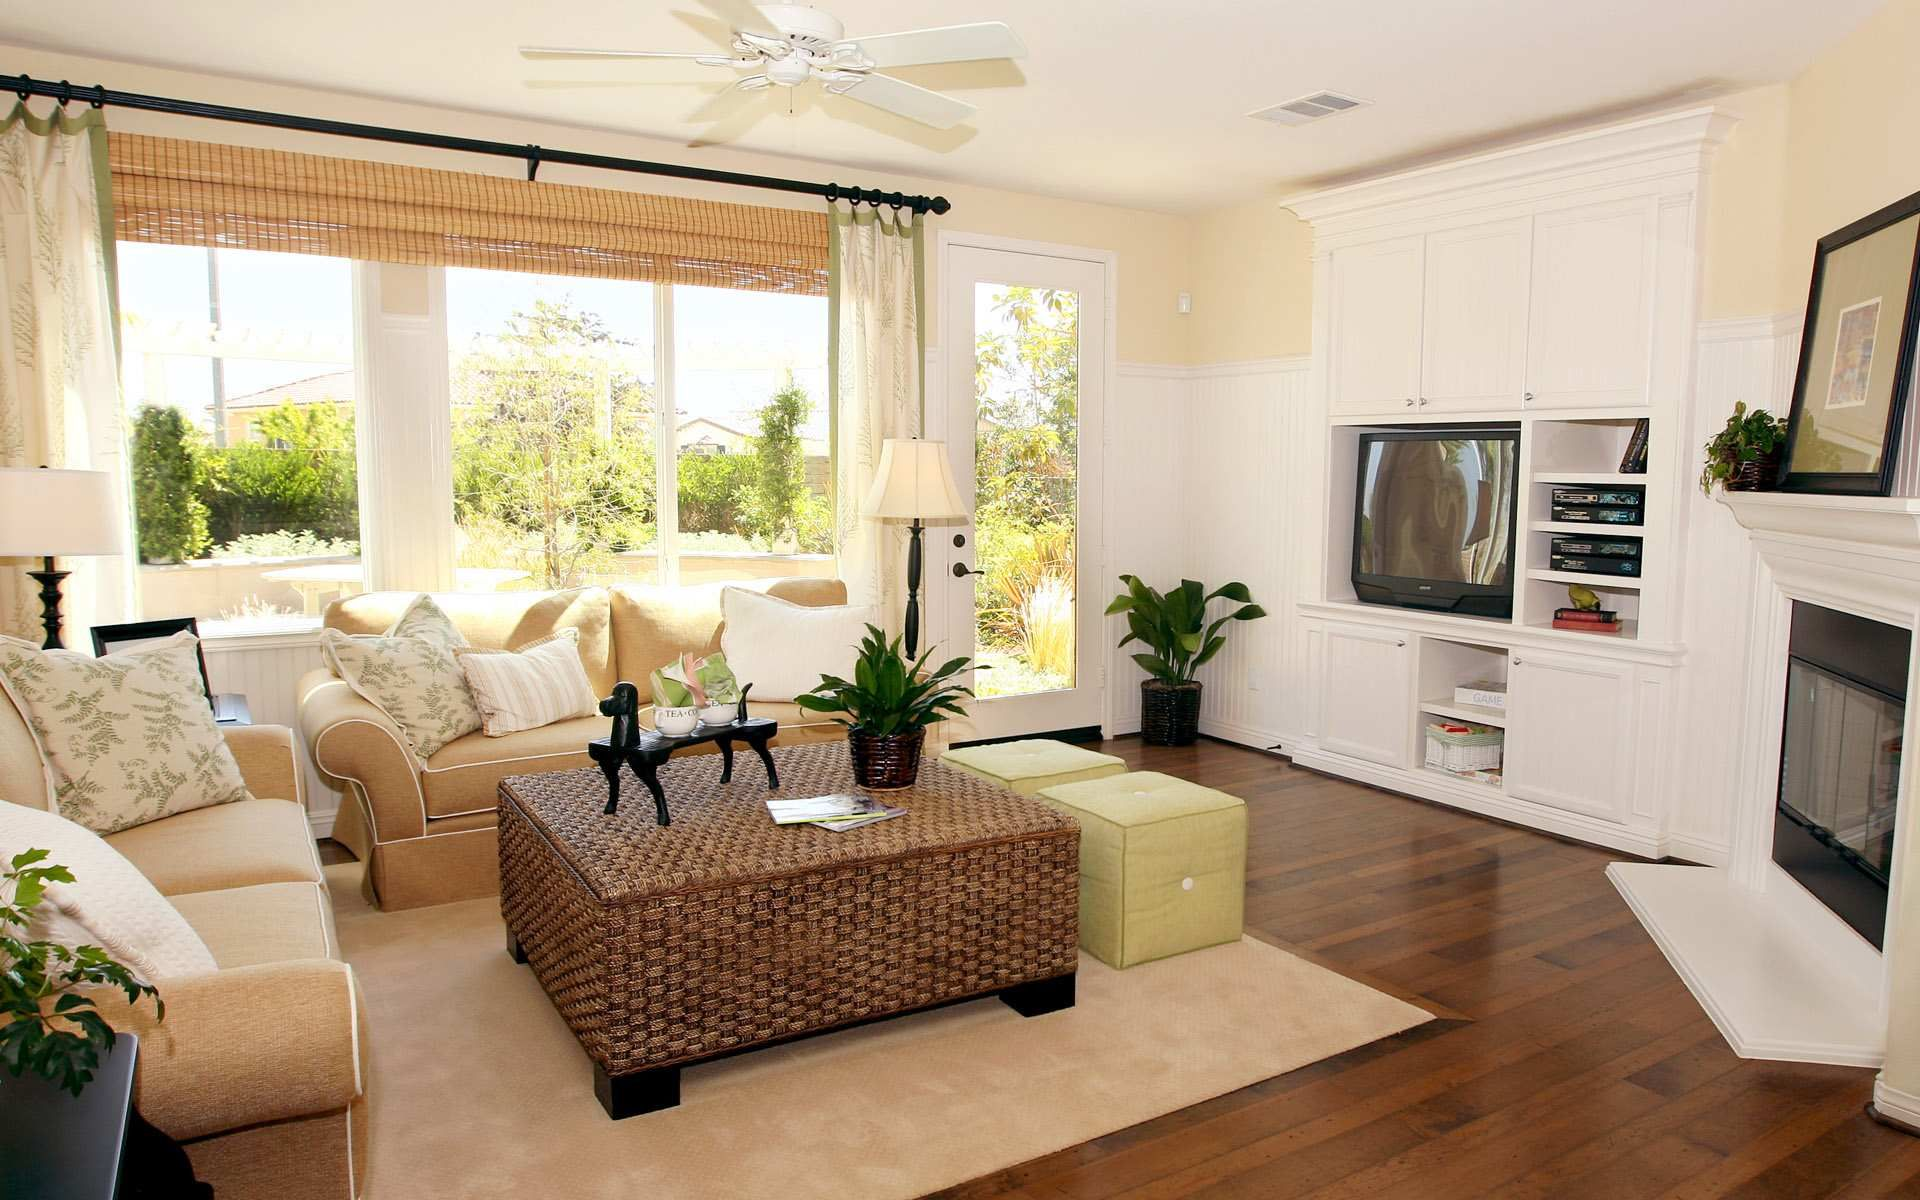 Home Design Living Room 19 Ideas For Your Apartment Decorating  Living Rooms Living Room .